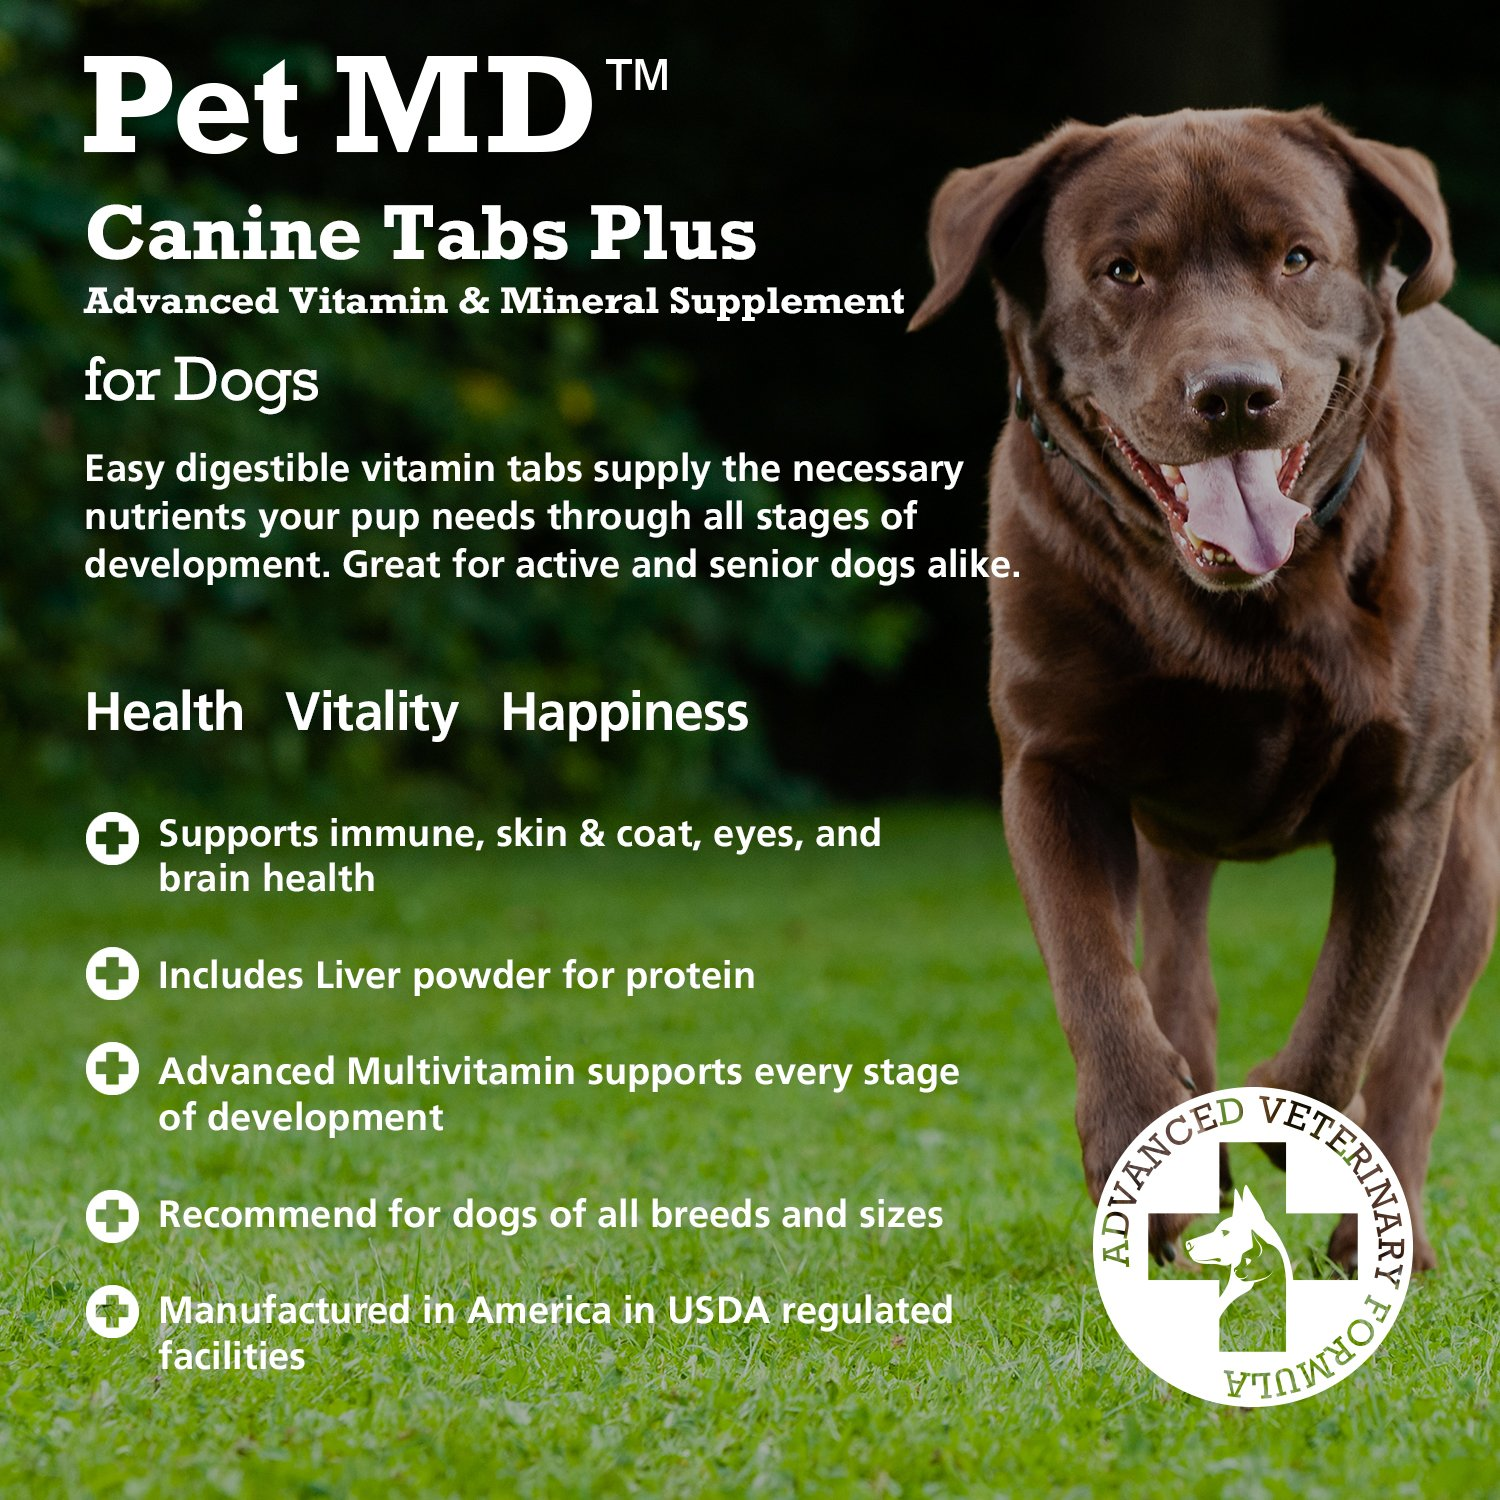 Pet MD - Canine Tabs Plus 365 Count - Advanced Multivitamins for Dogs - Natural Daily Vitamin and Mineral Nutritional Supplement - Liver Flavored Chewable Tablets by Pet MD (Image #4)